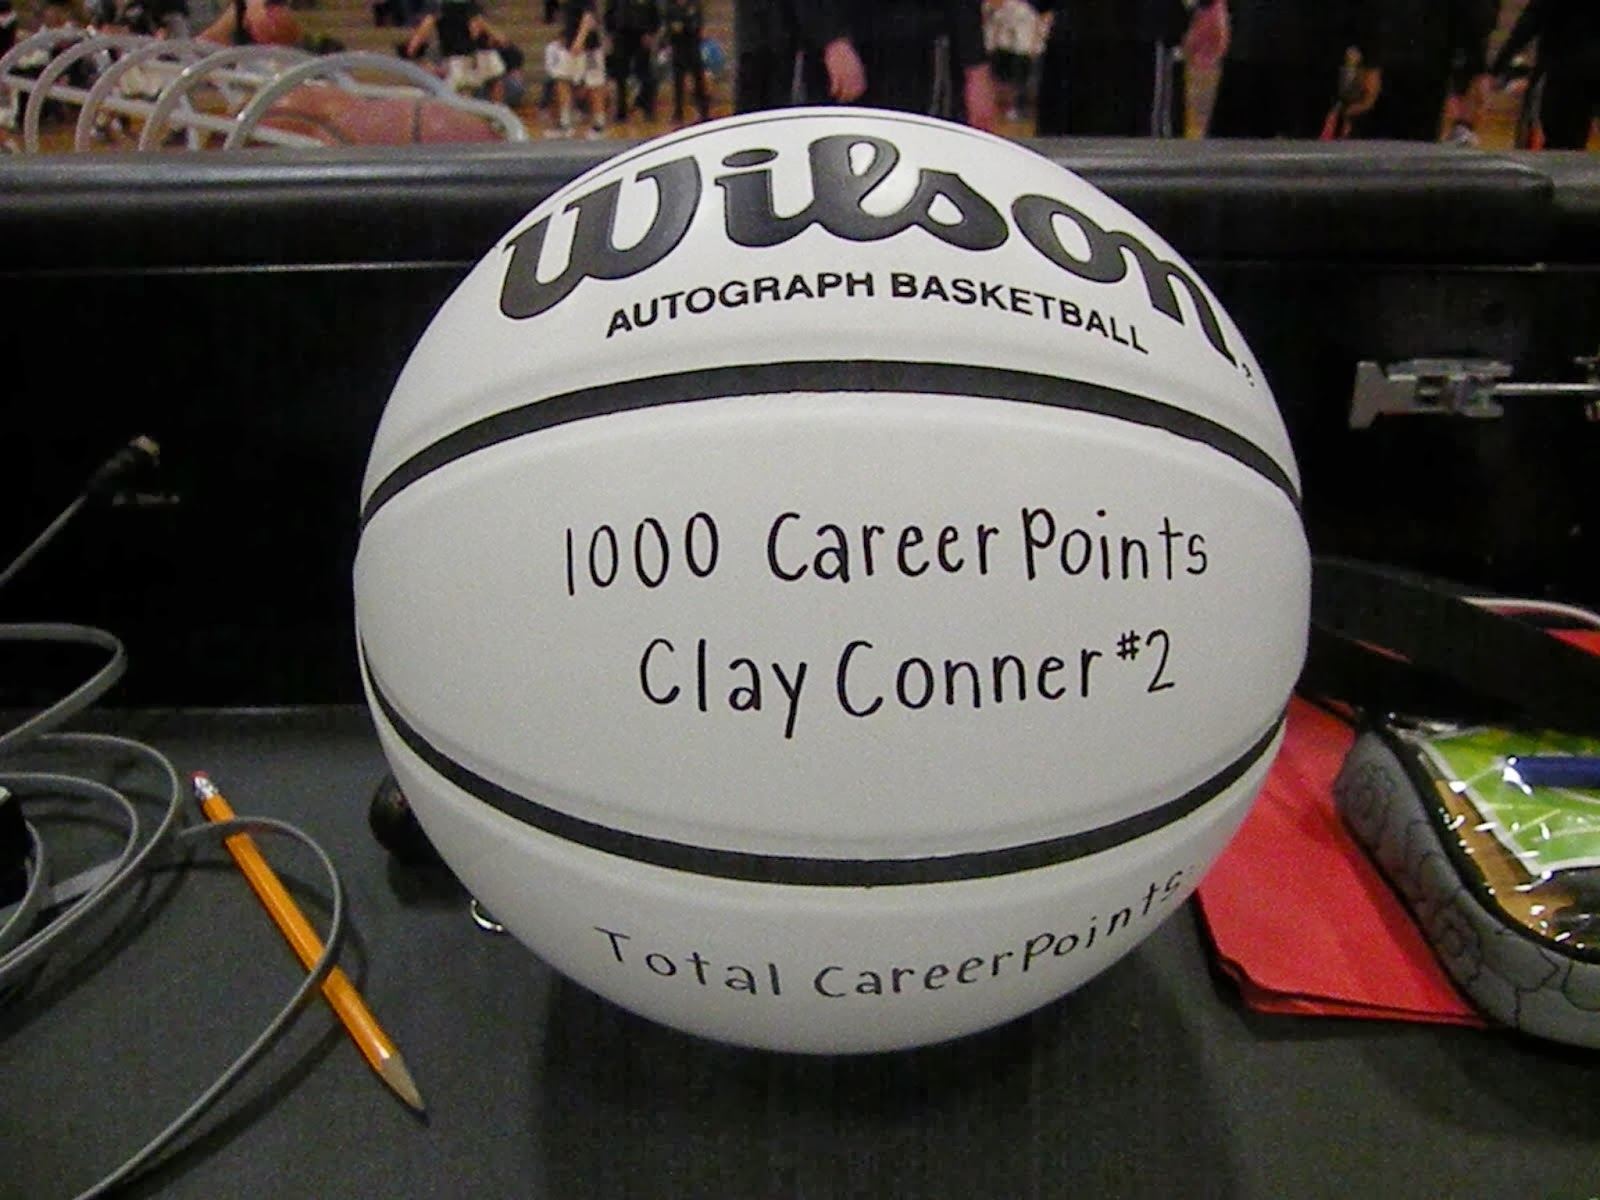 1,000 Career Points - Clay Conner